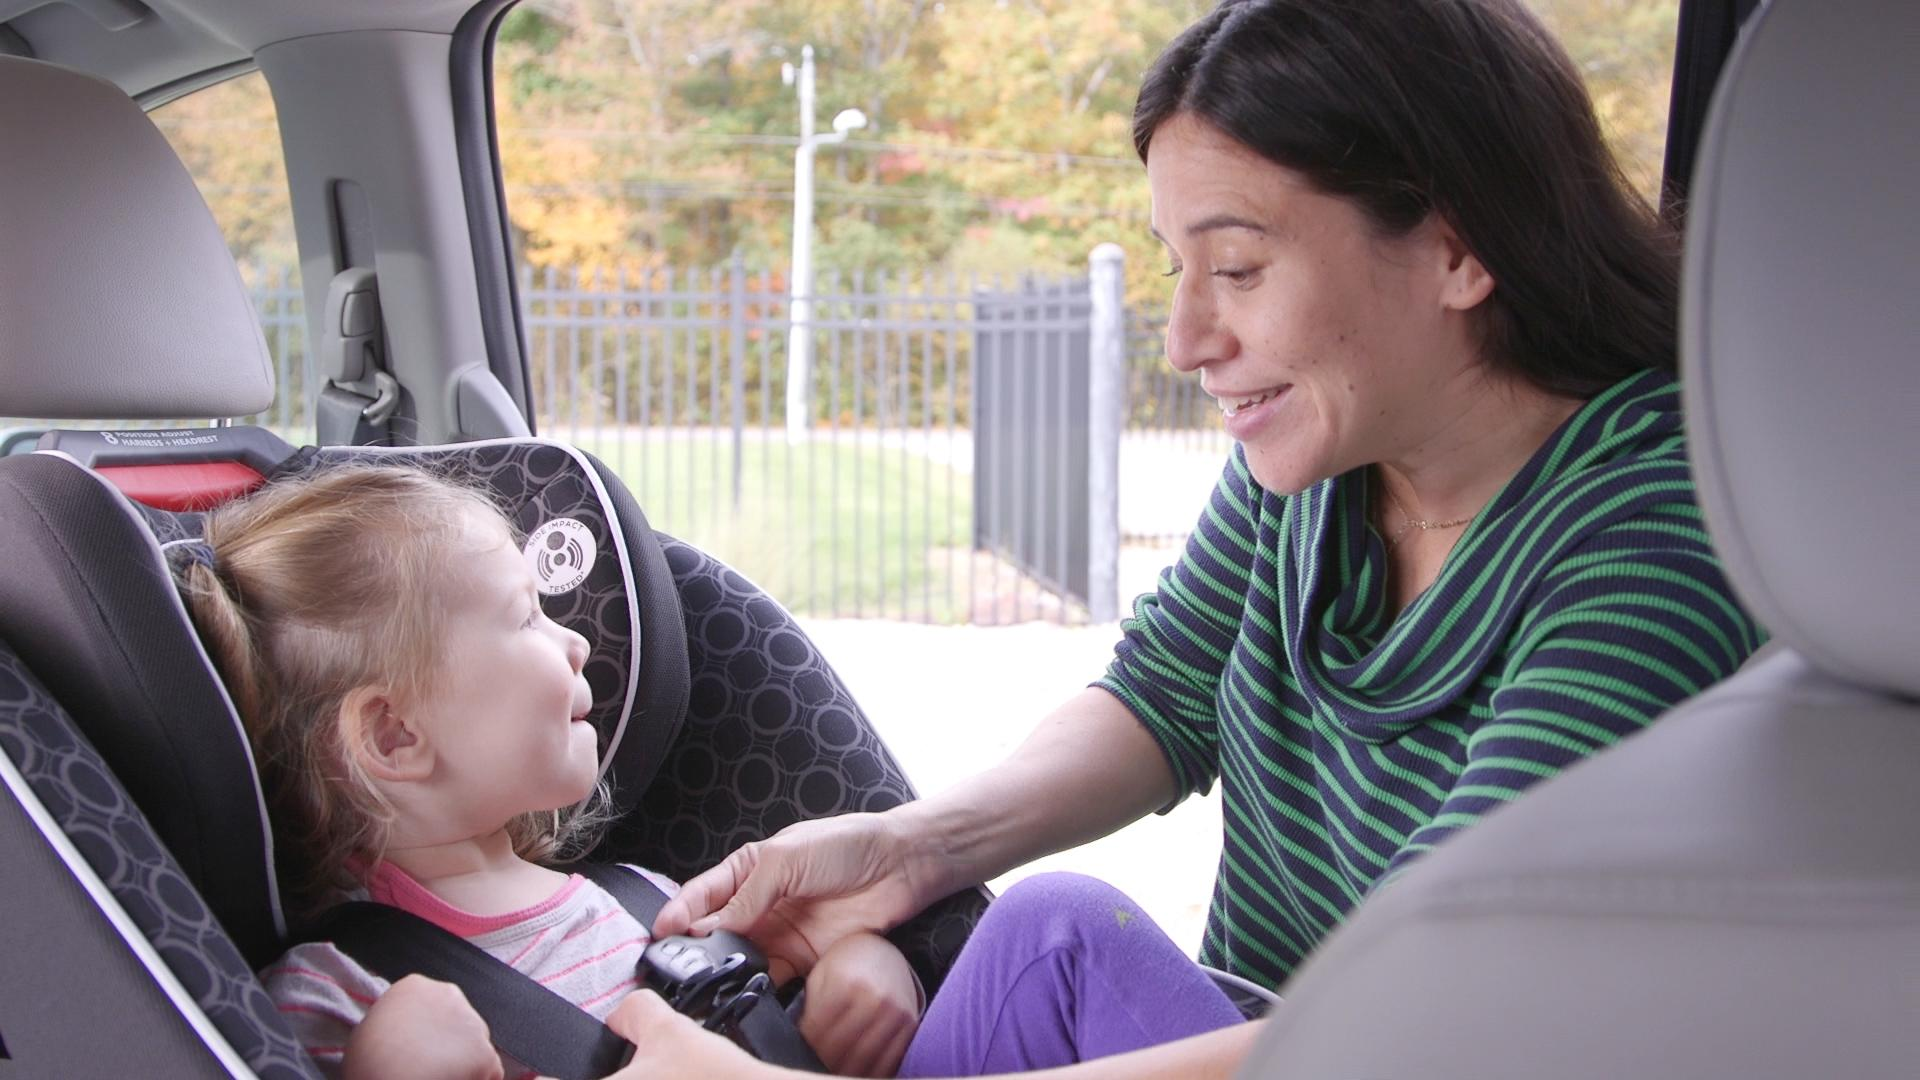 Baby bed like car seat - Why You Should Buy A Convertible Car Seat Sooner Rather Than Later